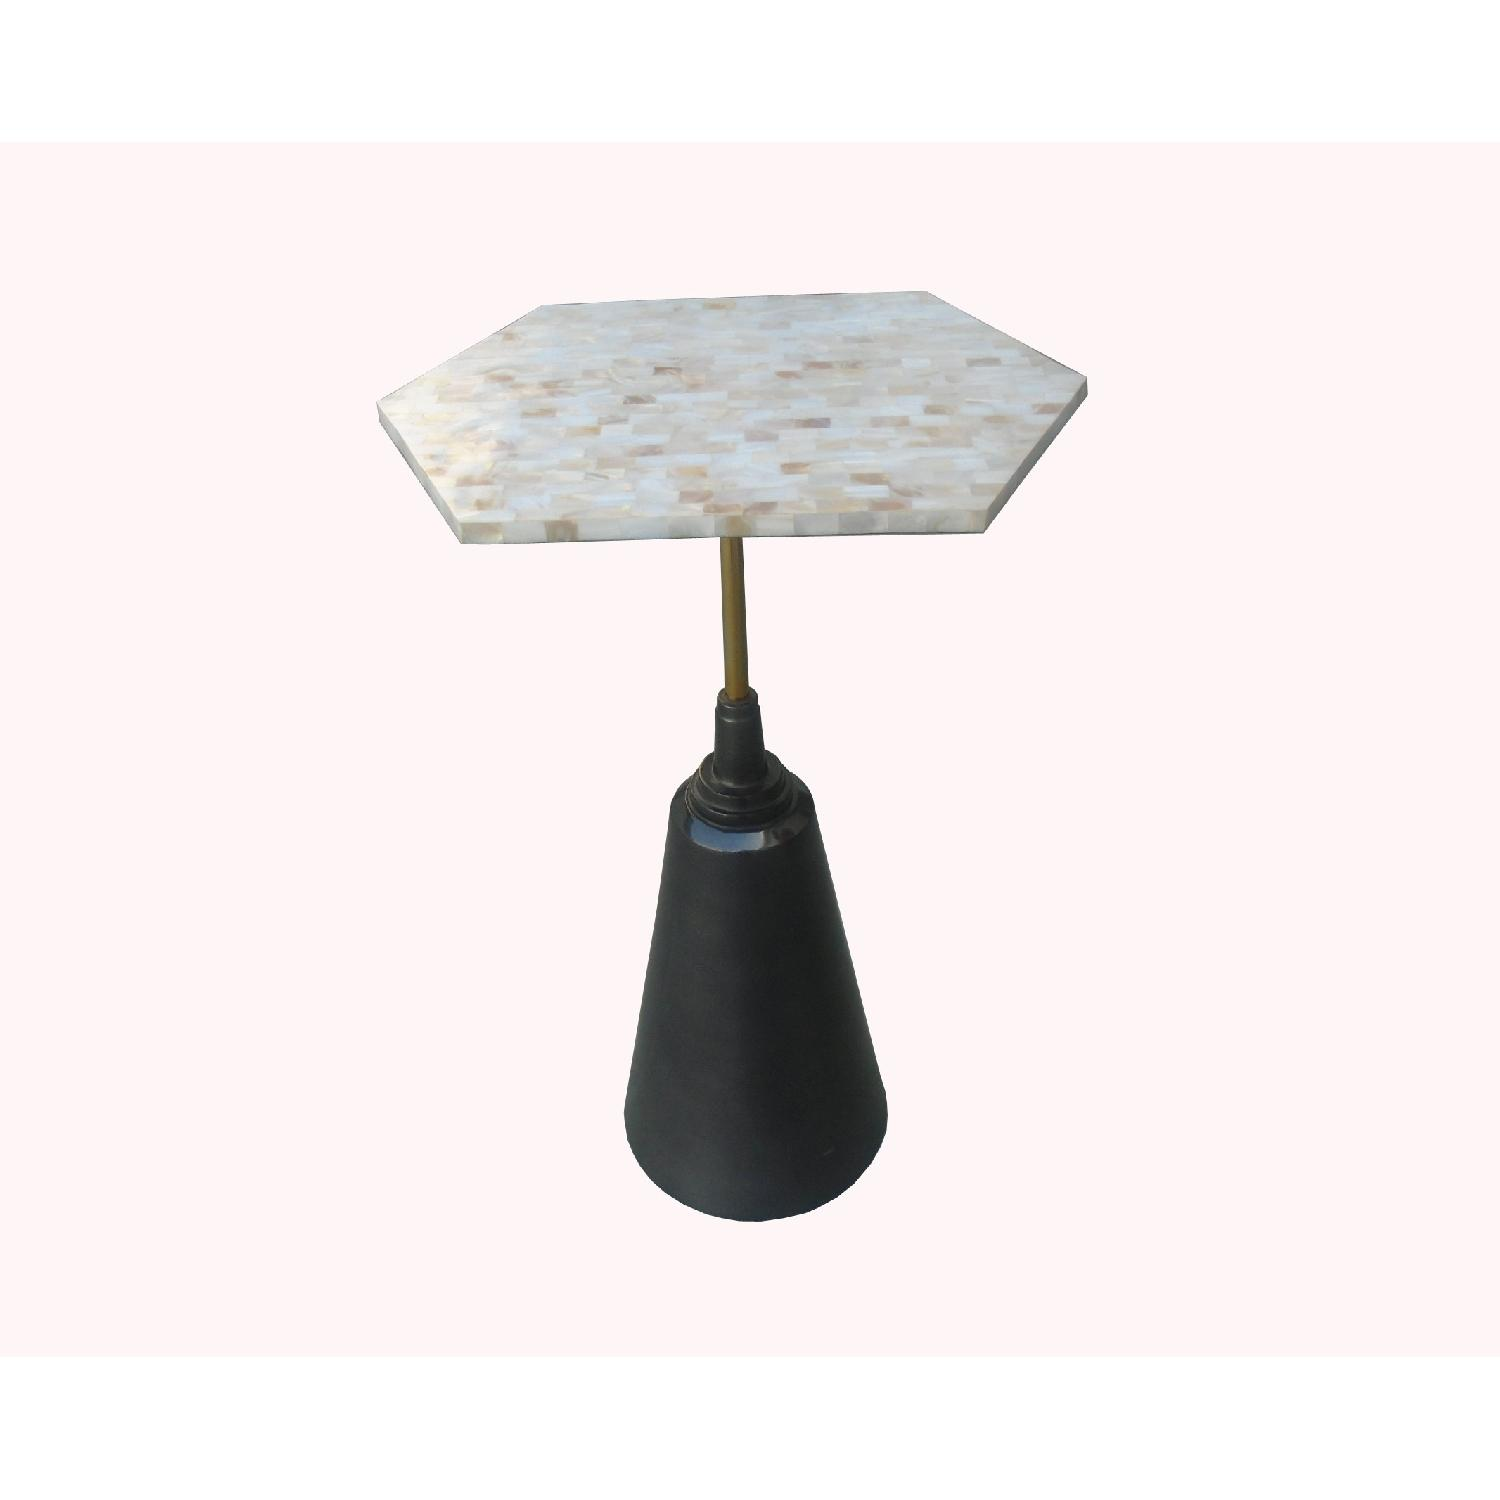 Designe Gallerie Metal Round Side End Table w/ Marble Top - image-0